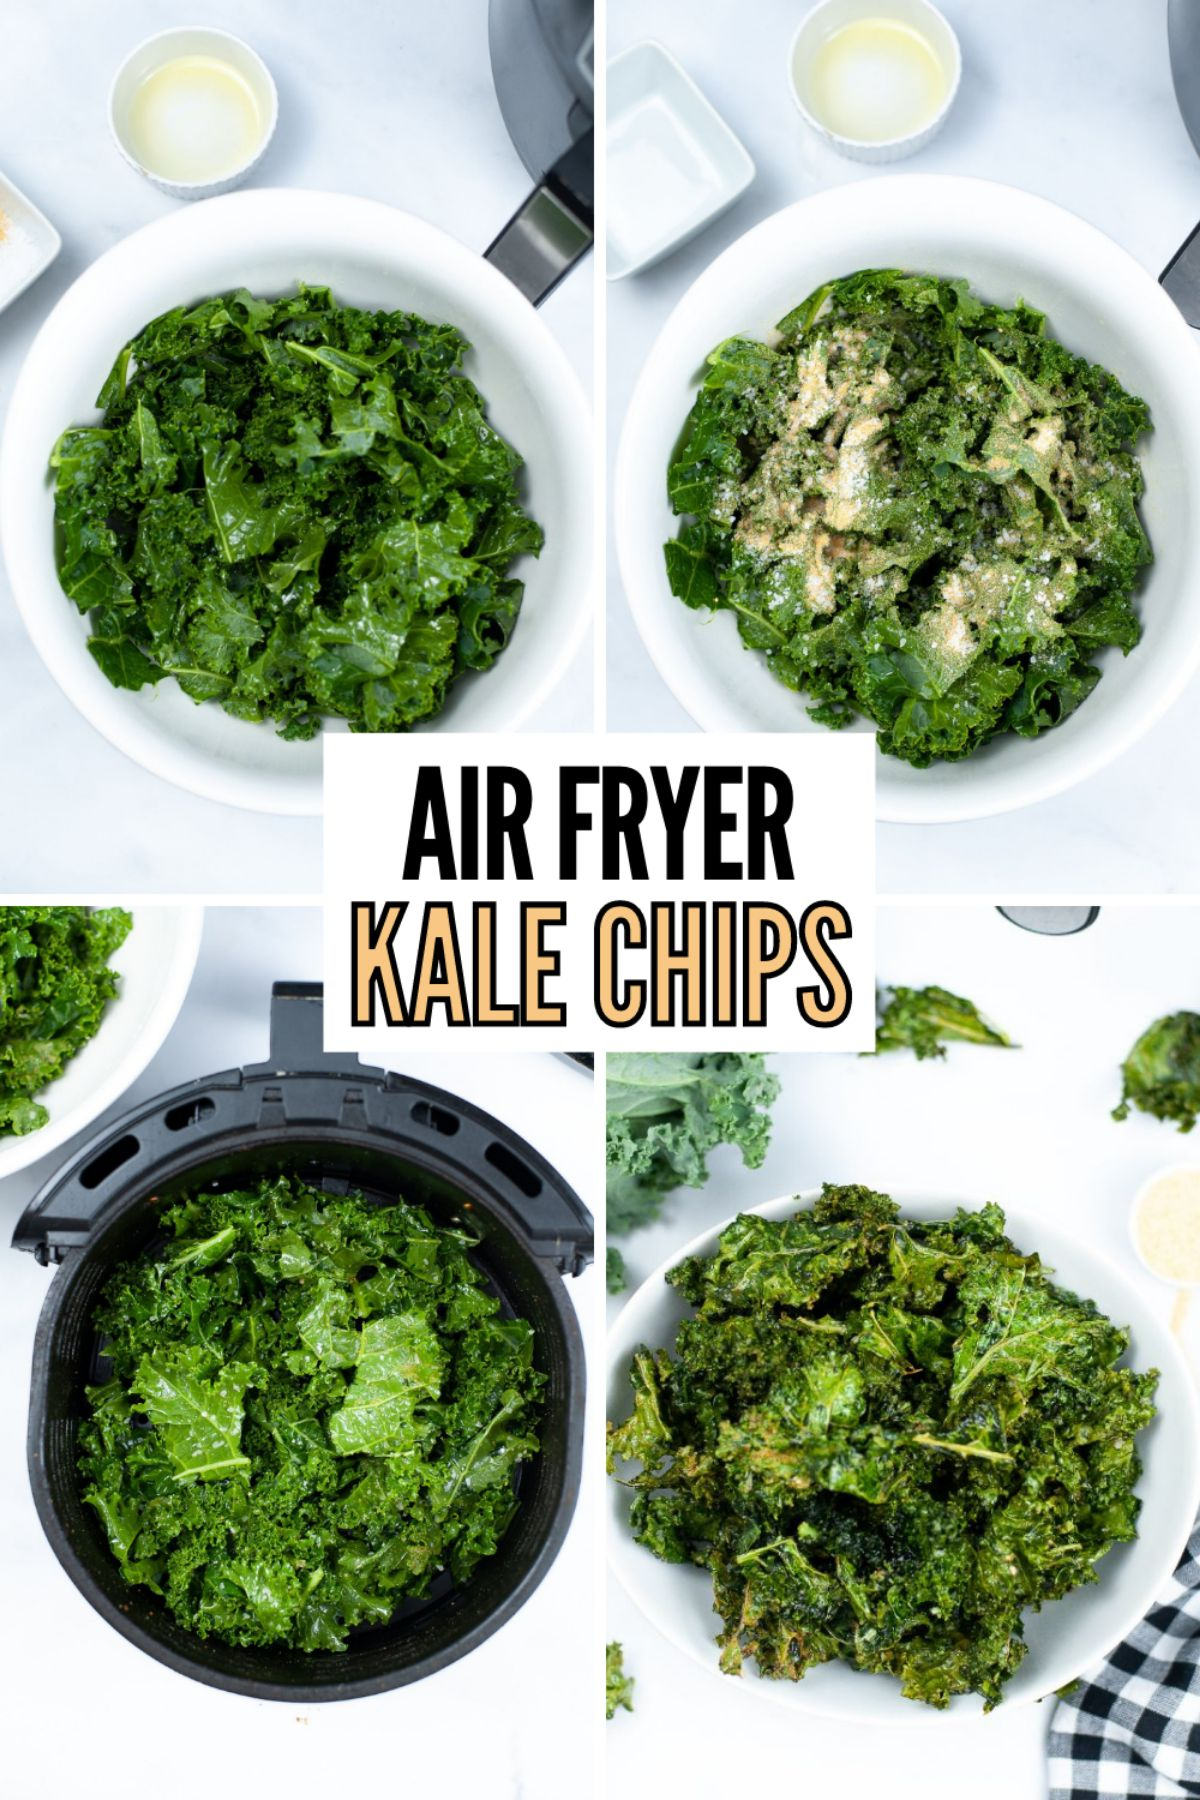 Air Fryer Kale Chips are crispy healthy chips bursting with salt and garlic flavors. These chips are so tasty even the kids will enjoy them! #airfryer #kalechips #lowcarb #keto #recipe via @wondermomwannab